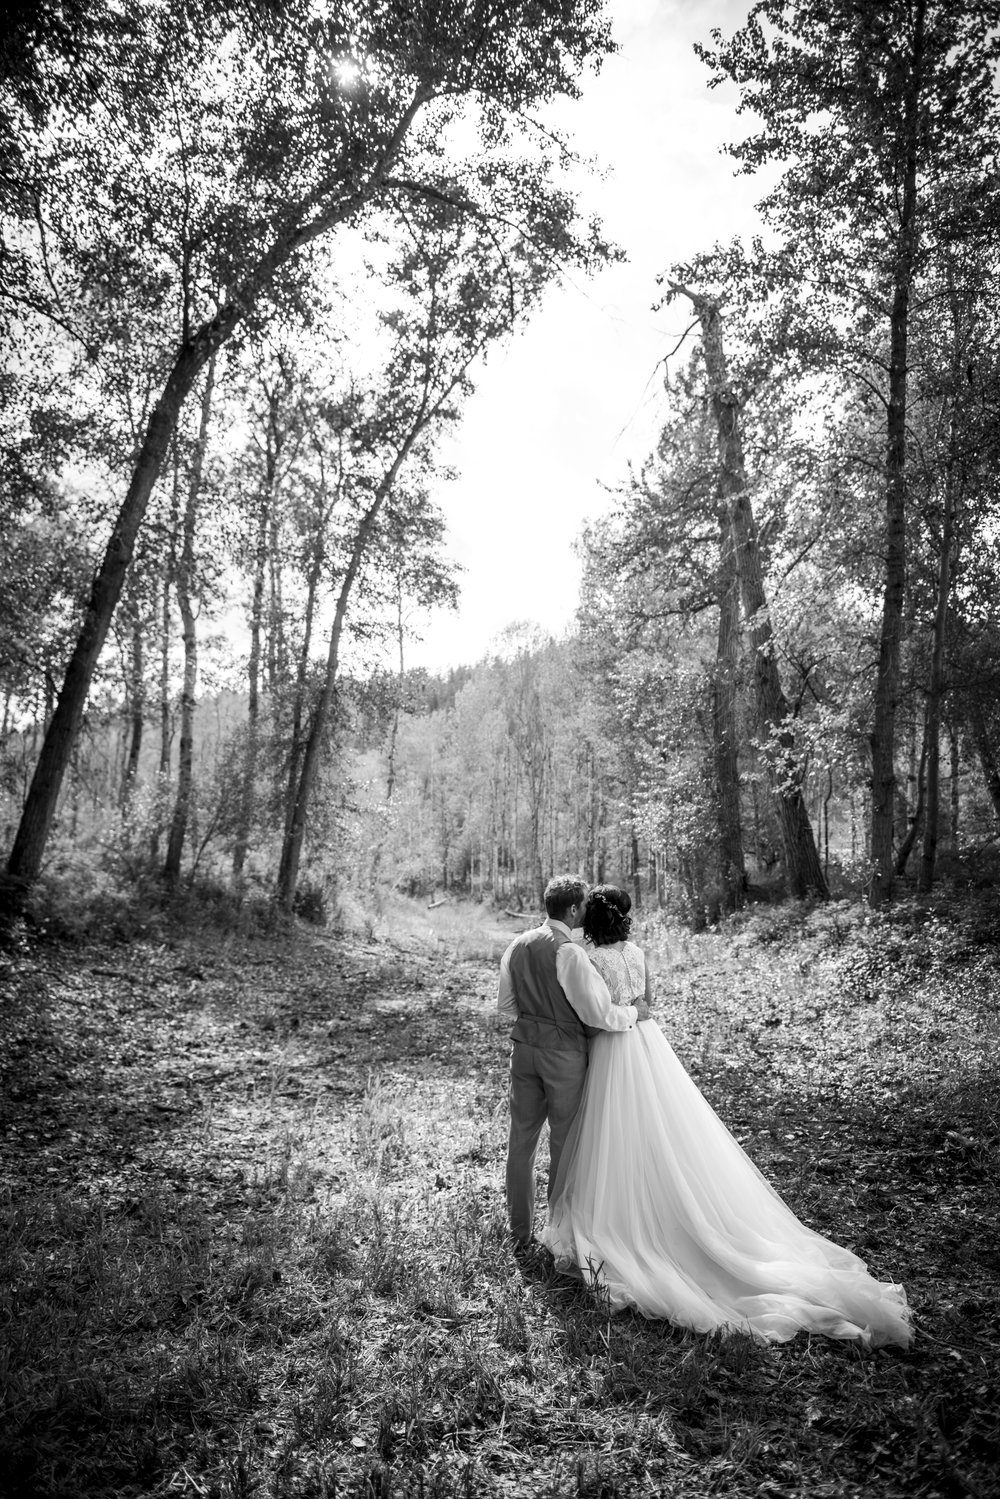 Weddings. - Cost: $3,400Includes:-An Engagement Session-Coverage of getting ready, ceremony, family and wedding party portraits - approx. 6 hrsAdd - ons:-Reception coverage 3 hrs - $600-Second professional photographer - $800-Wedding album - 12x12 inch - $550